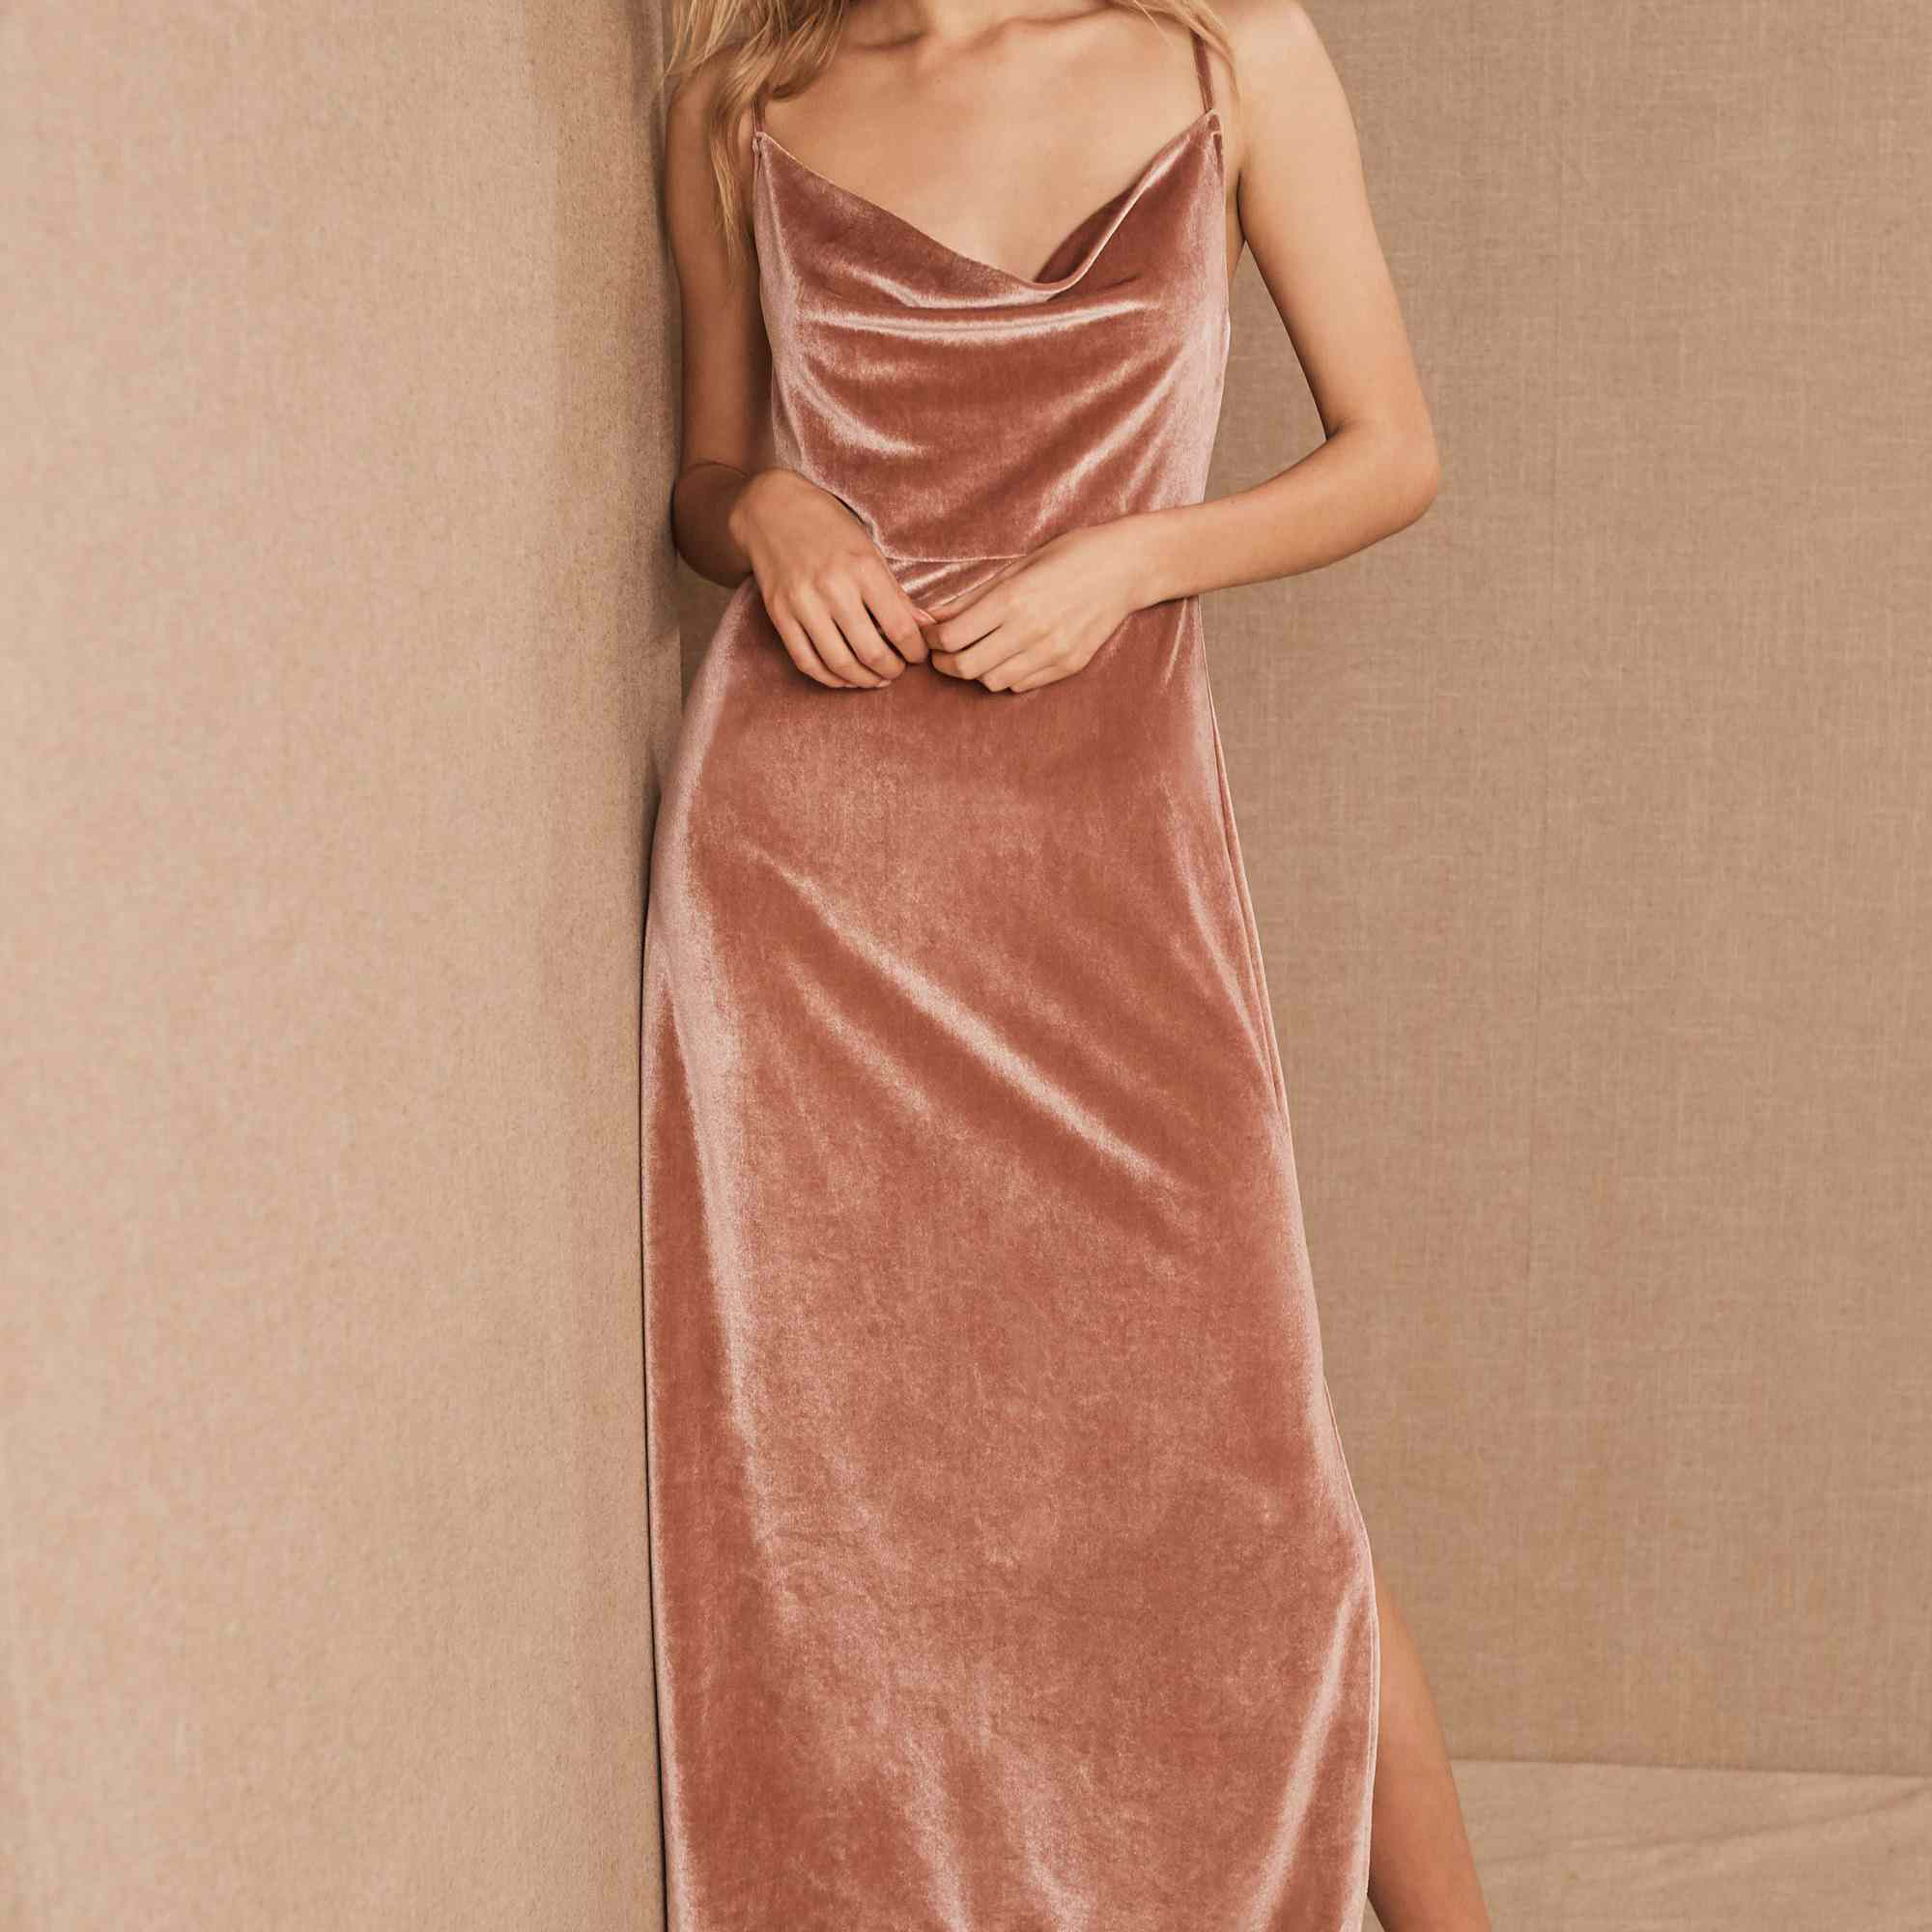 Luxury Wedding Dresses The Best Options For Your Big Day By